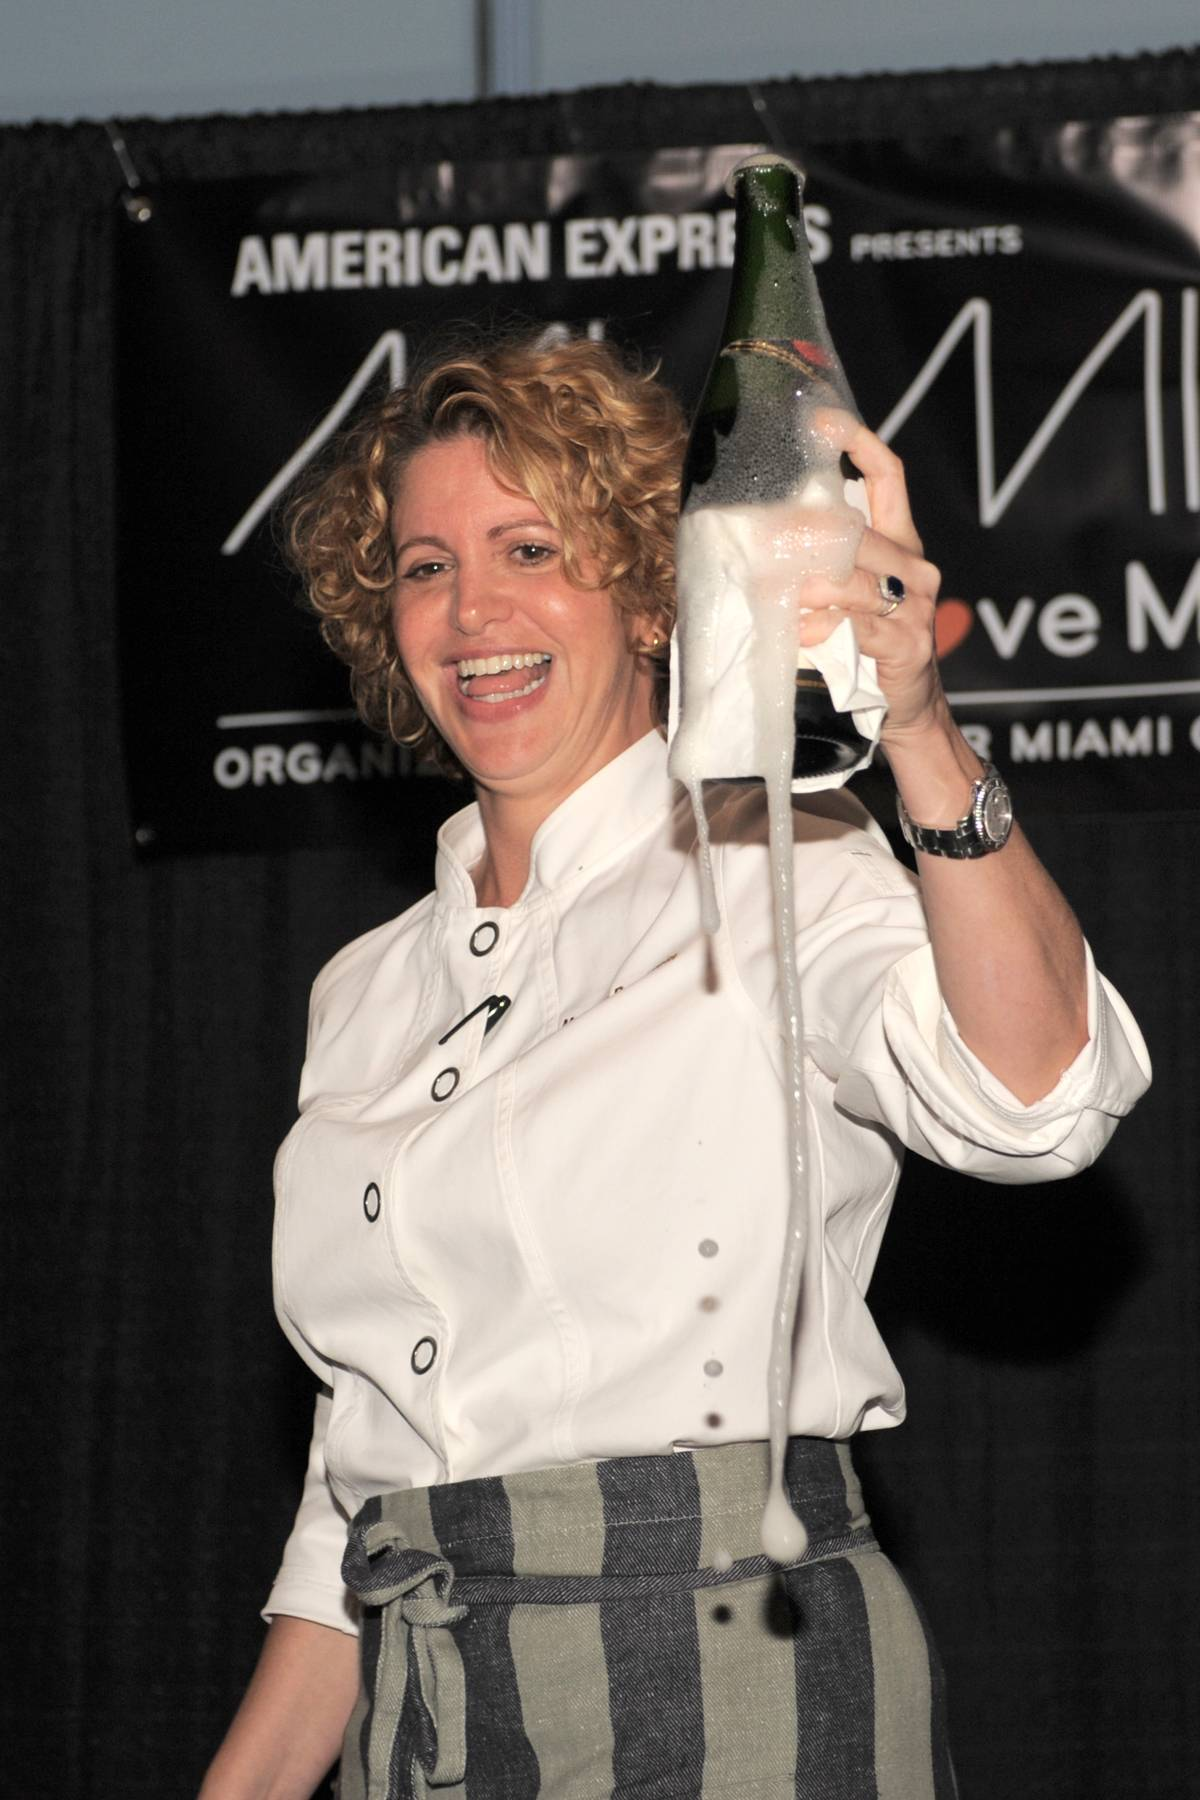 1327-Chef Michelle Bernstein sabers champagne bottle to get festivities popping